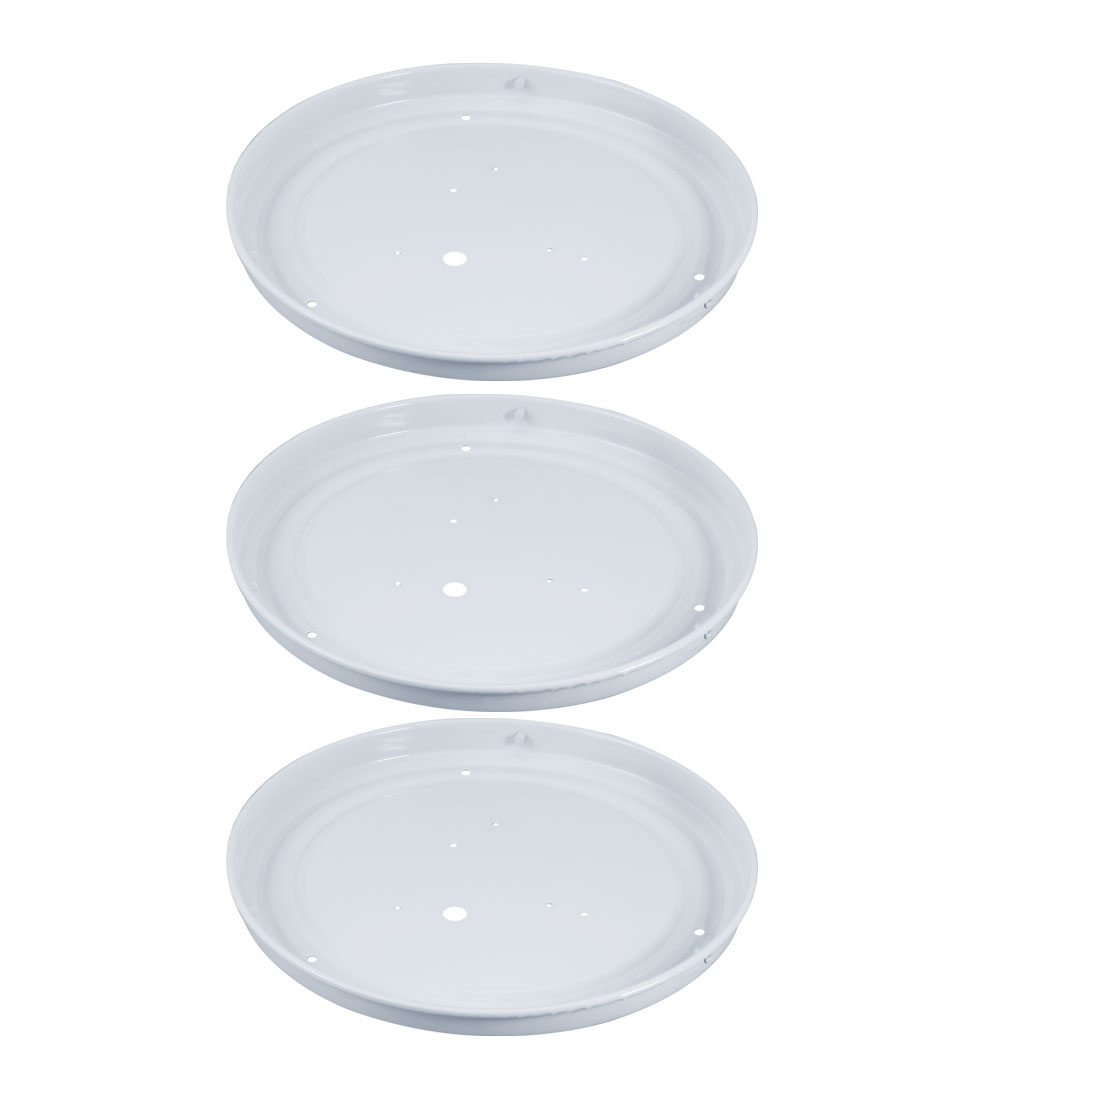 3pcs Ceiling Light Sink Mount Plate Iron Lamp Chassis Fit for 230mm Diameter